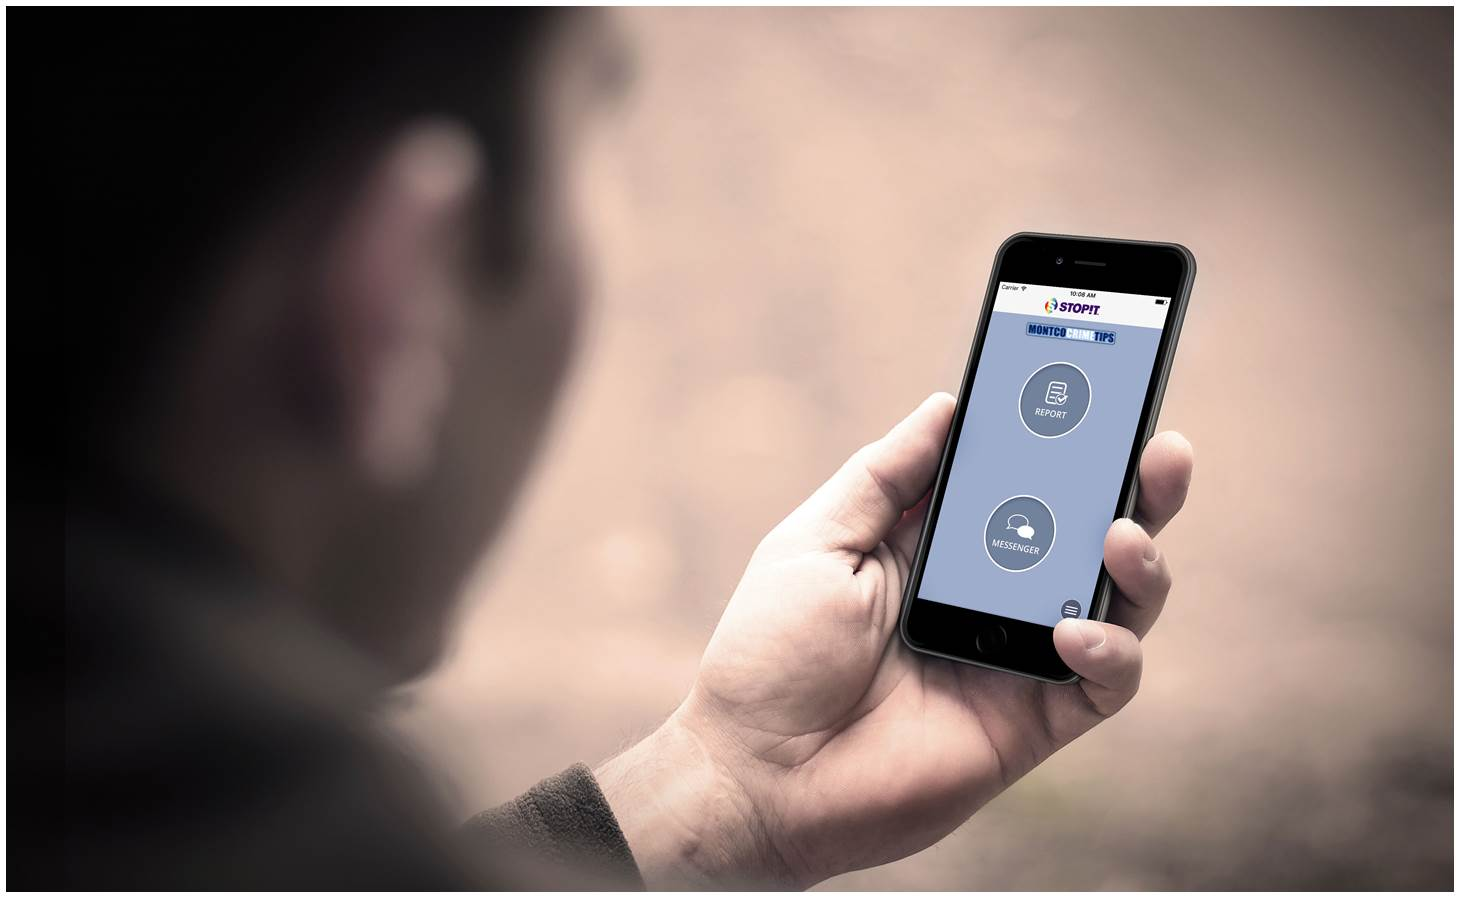 New app allows Montgomery County residents to anonymously text crime tips to law enforcement